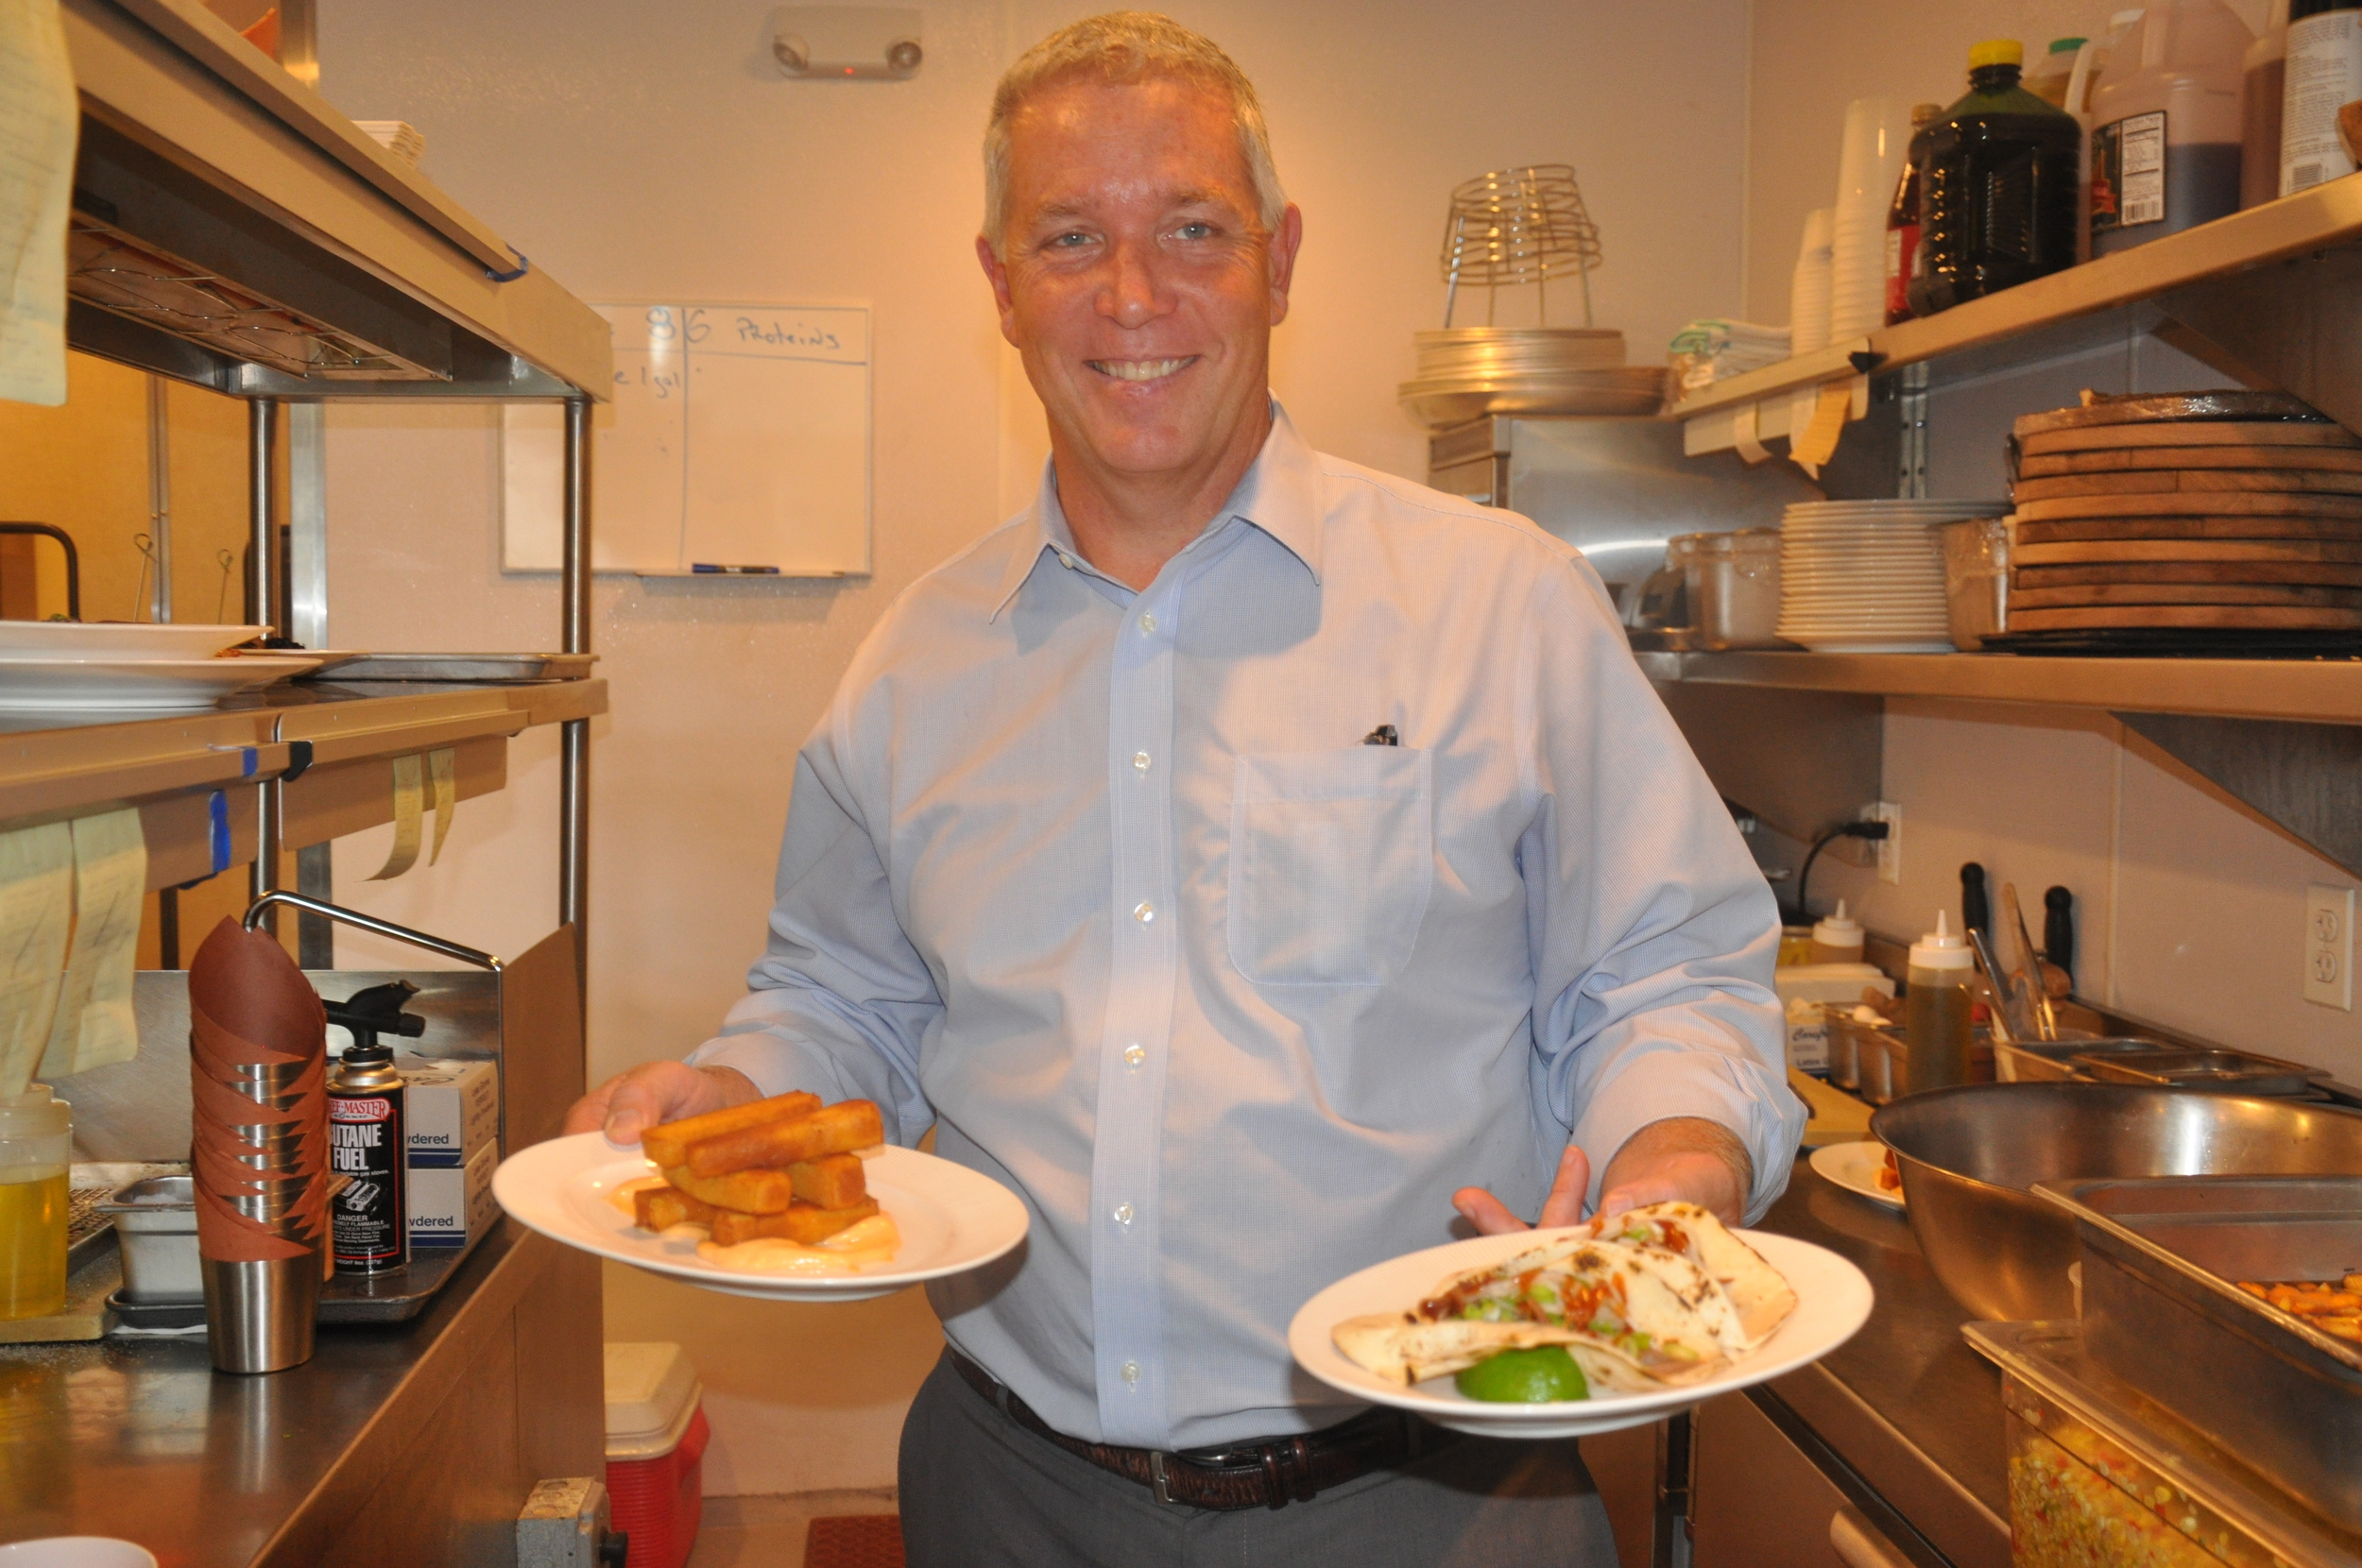 James Olsen, general manager of Sandbar in Cold Spring Harbor, is all smiles holding delicious chickpea fries, left, and duck tacos appetizers.